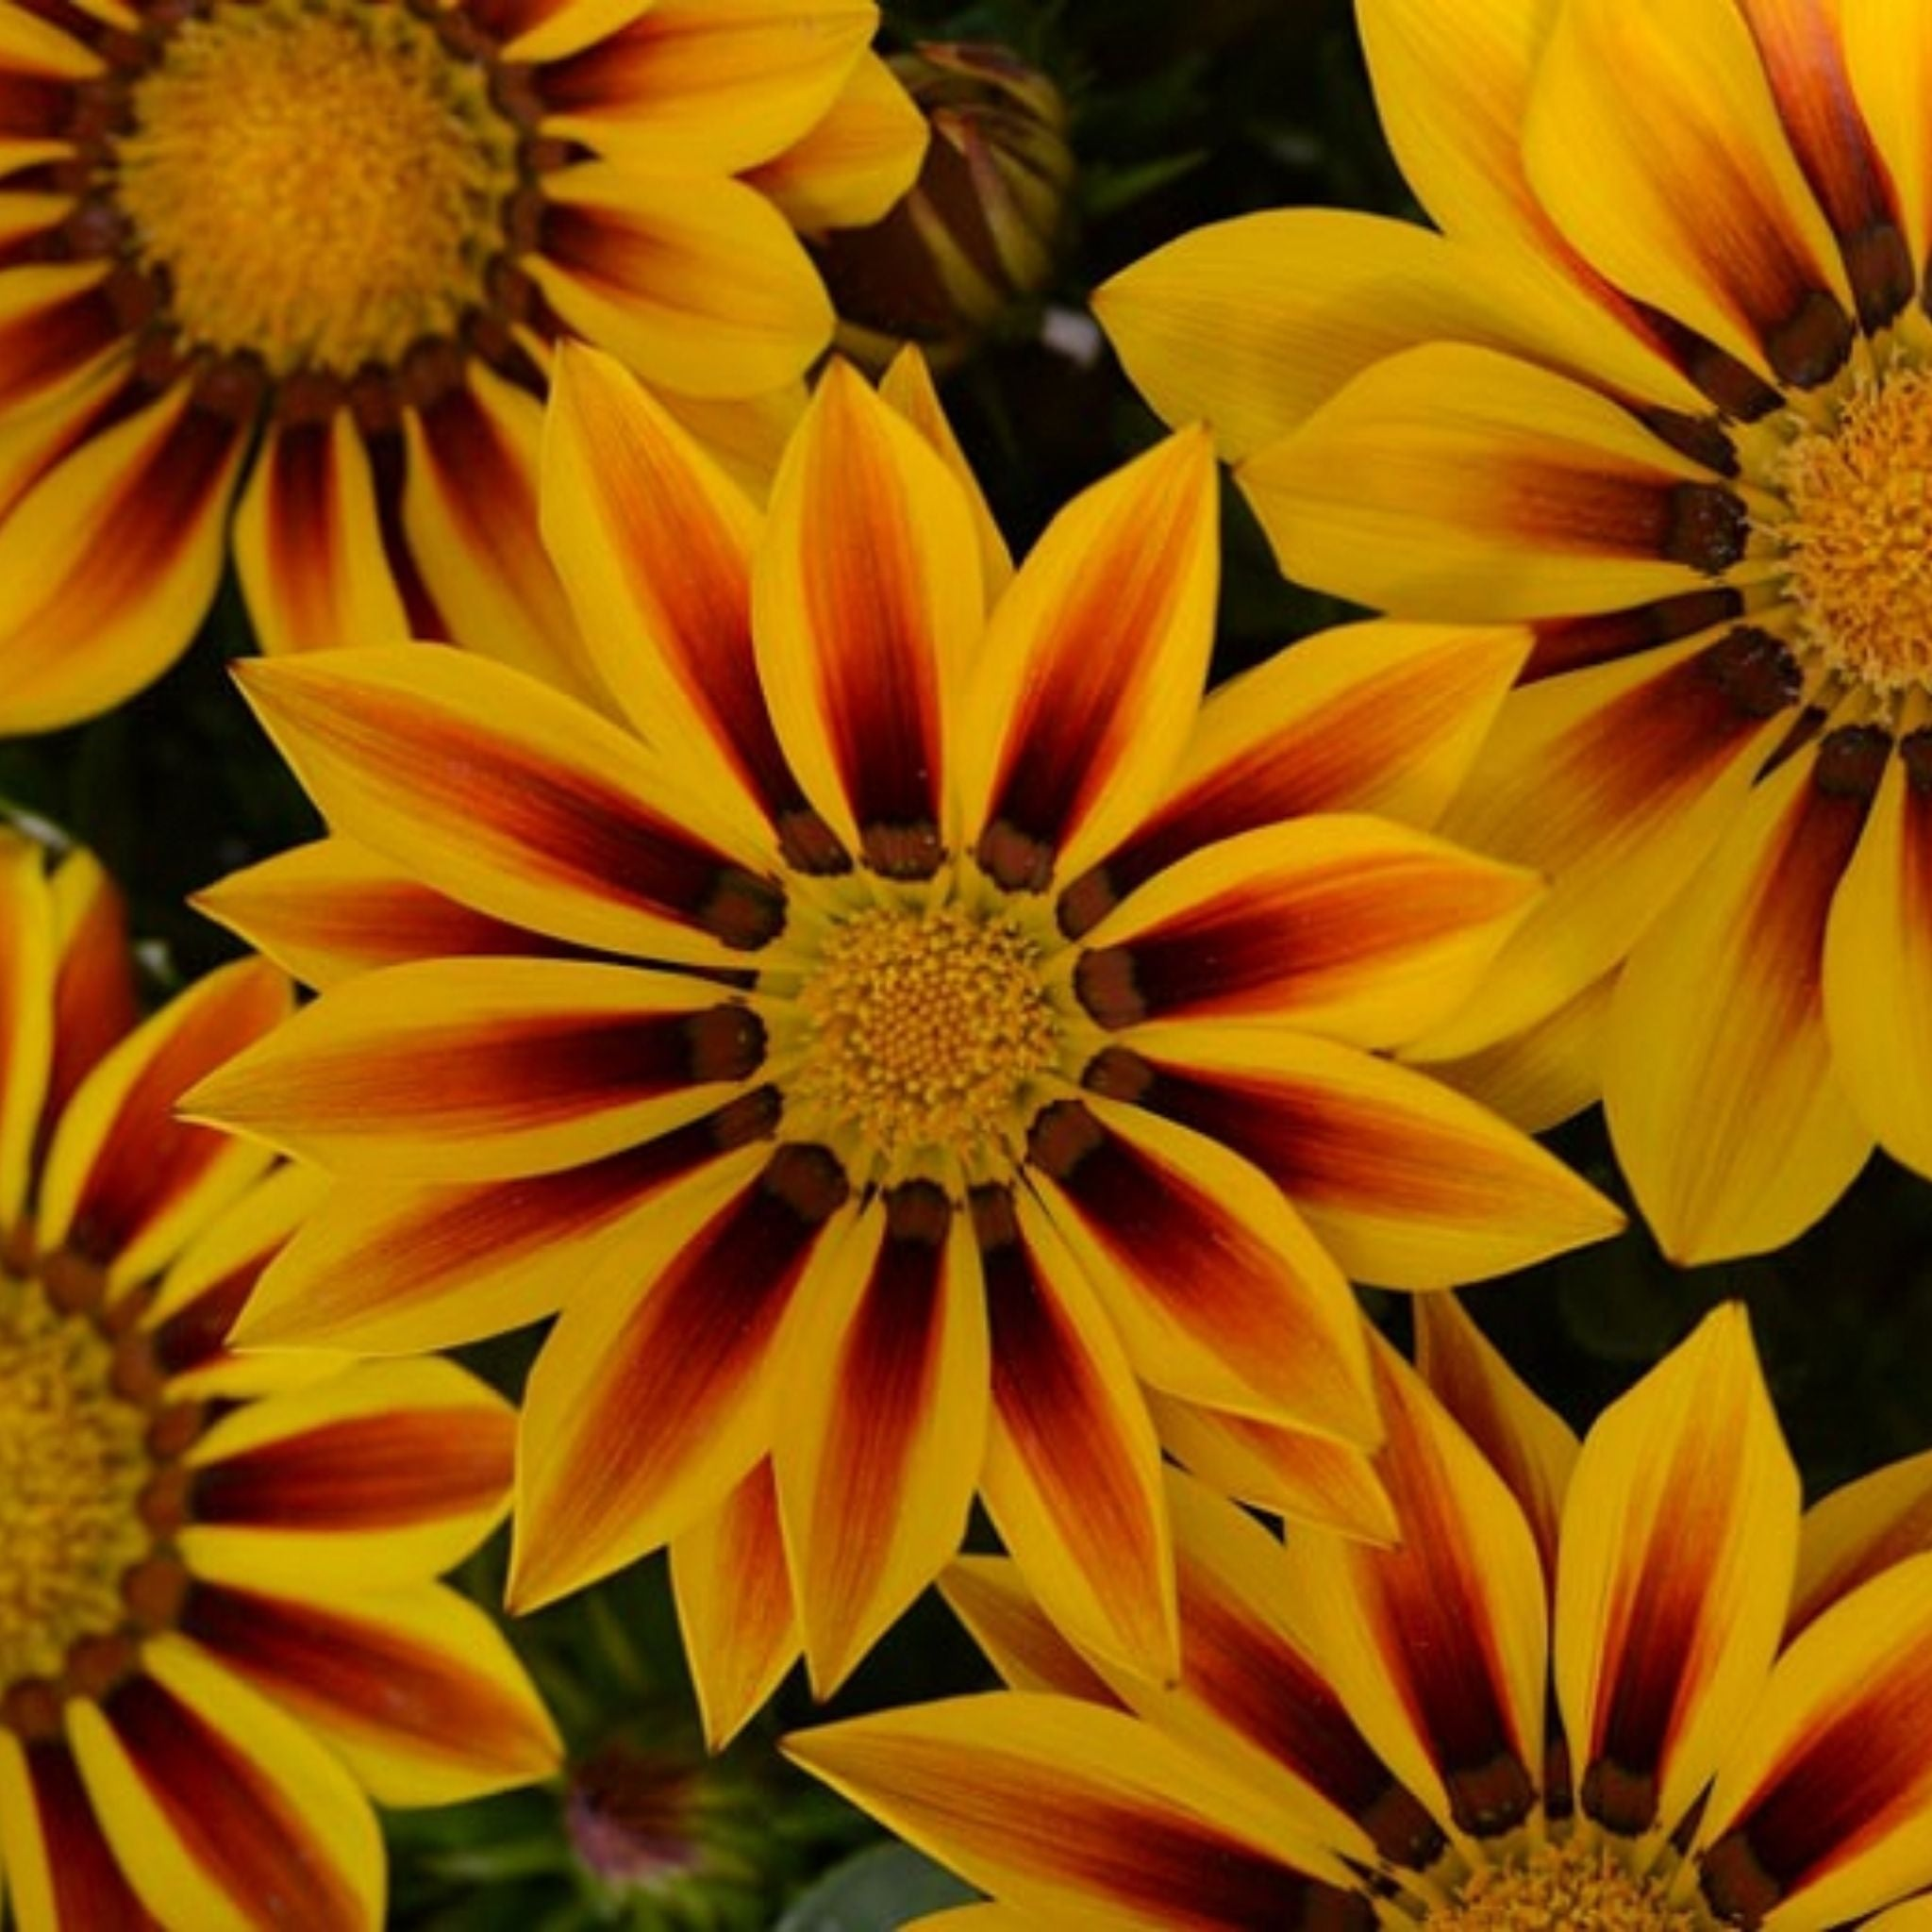 Gazania Flats for sale kollmans greenhouse twinsburg oh